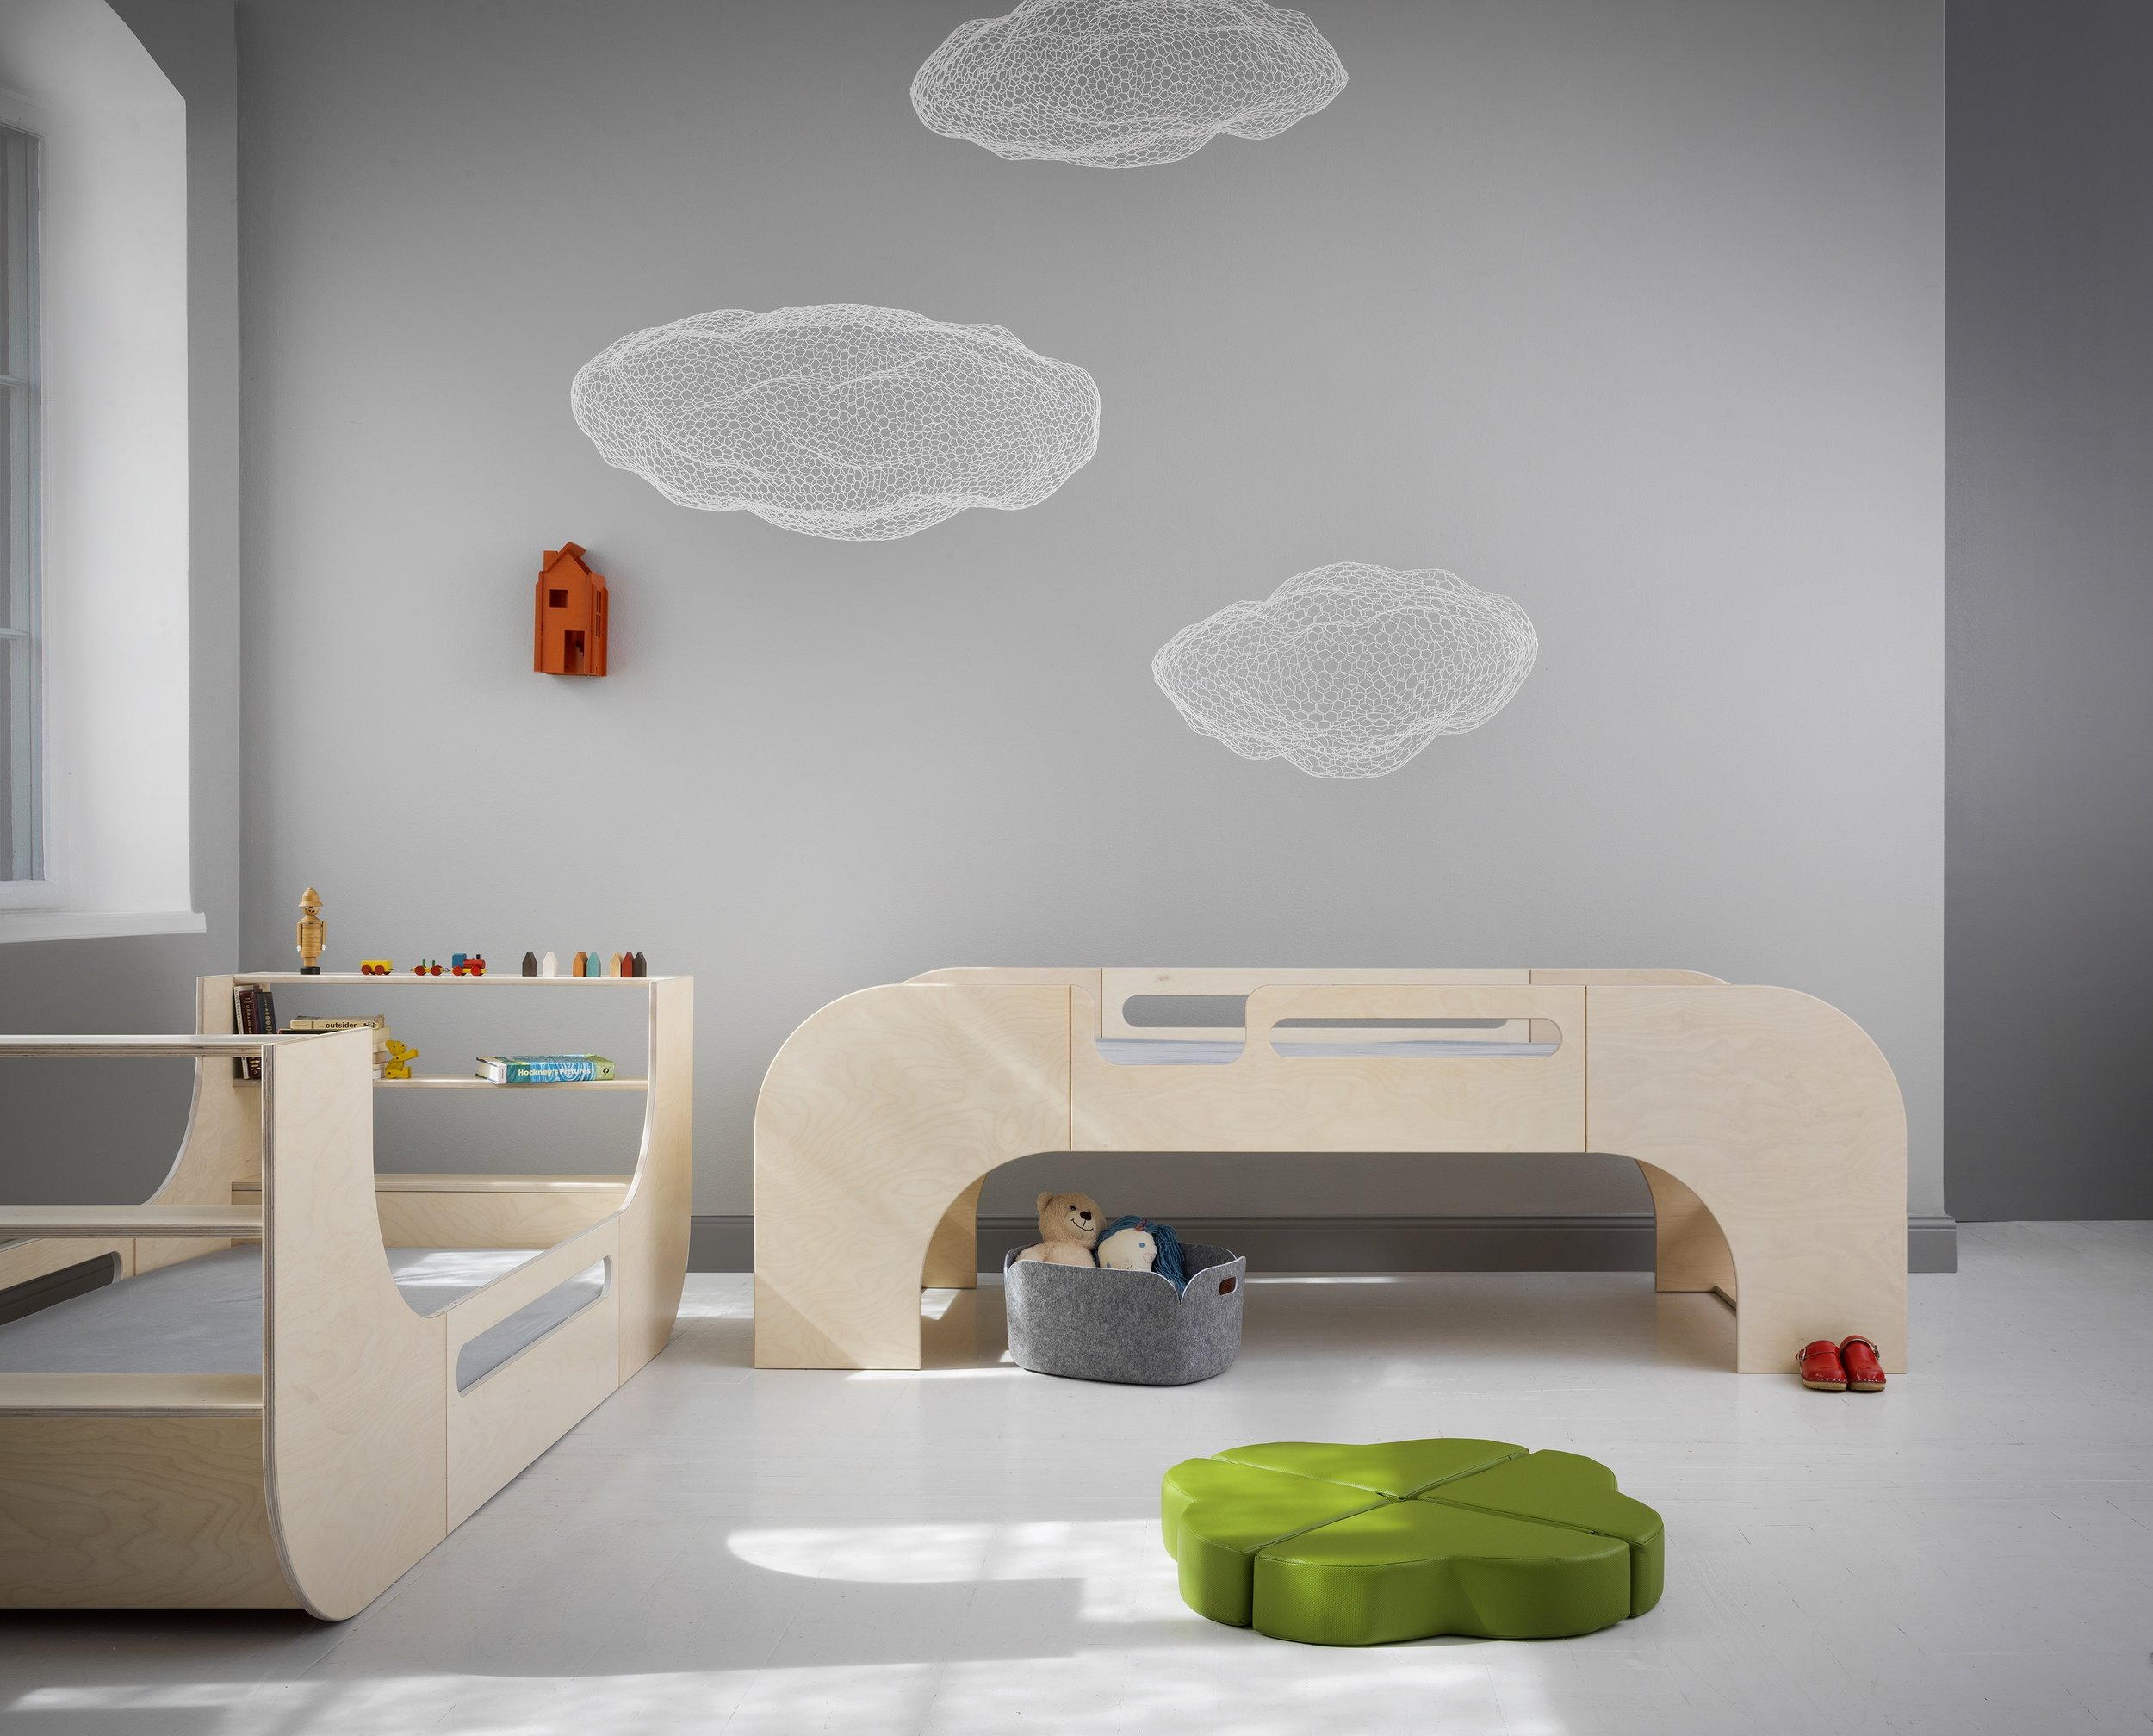 IOKIDS_Pod Split Bunk product high res.jpg